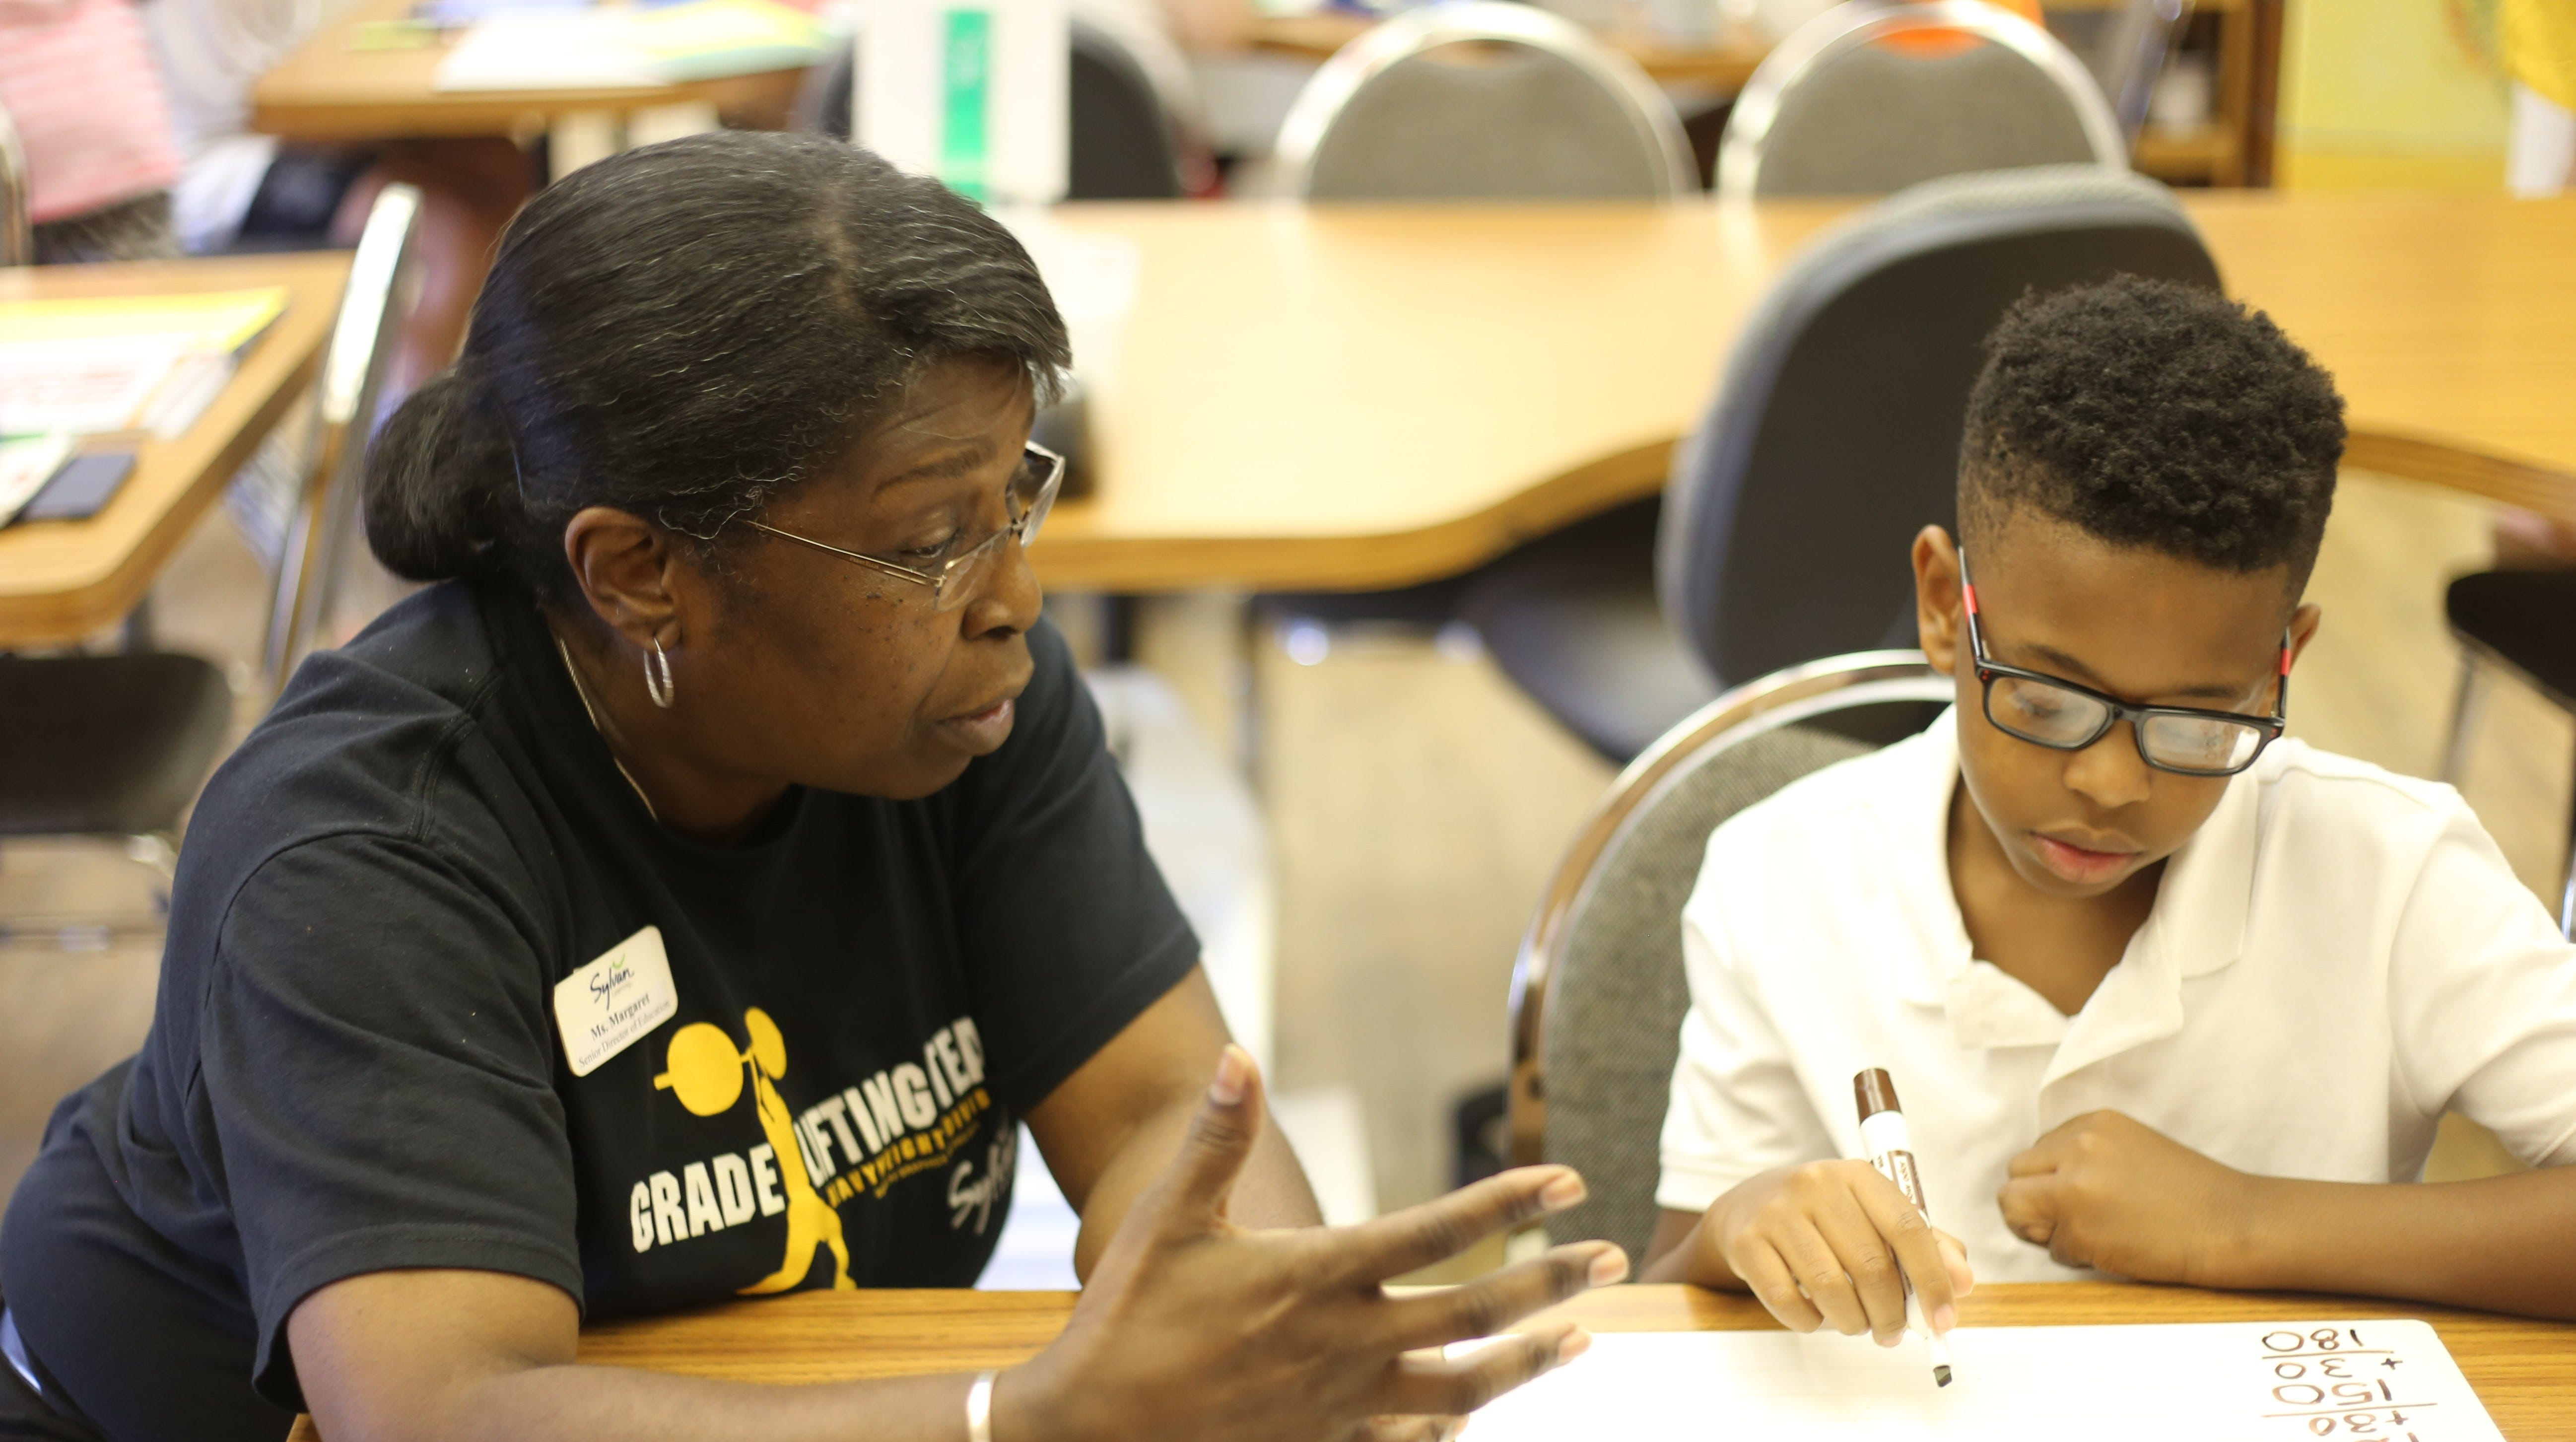 Tutoring center opens in old library, just in time for school